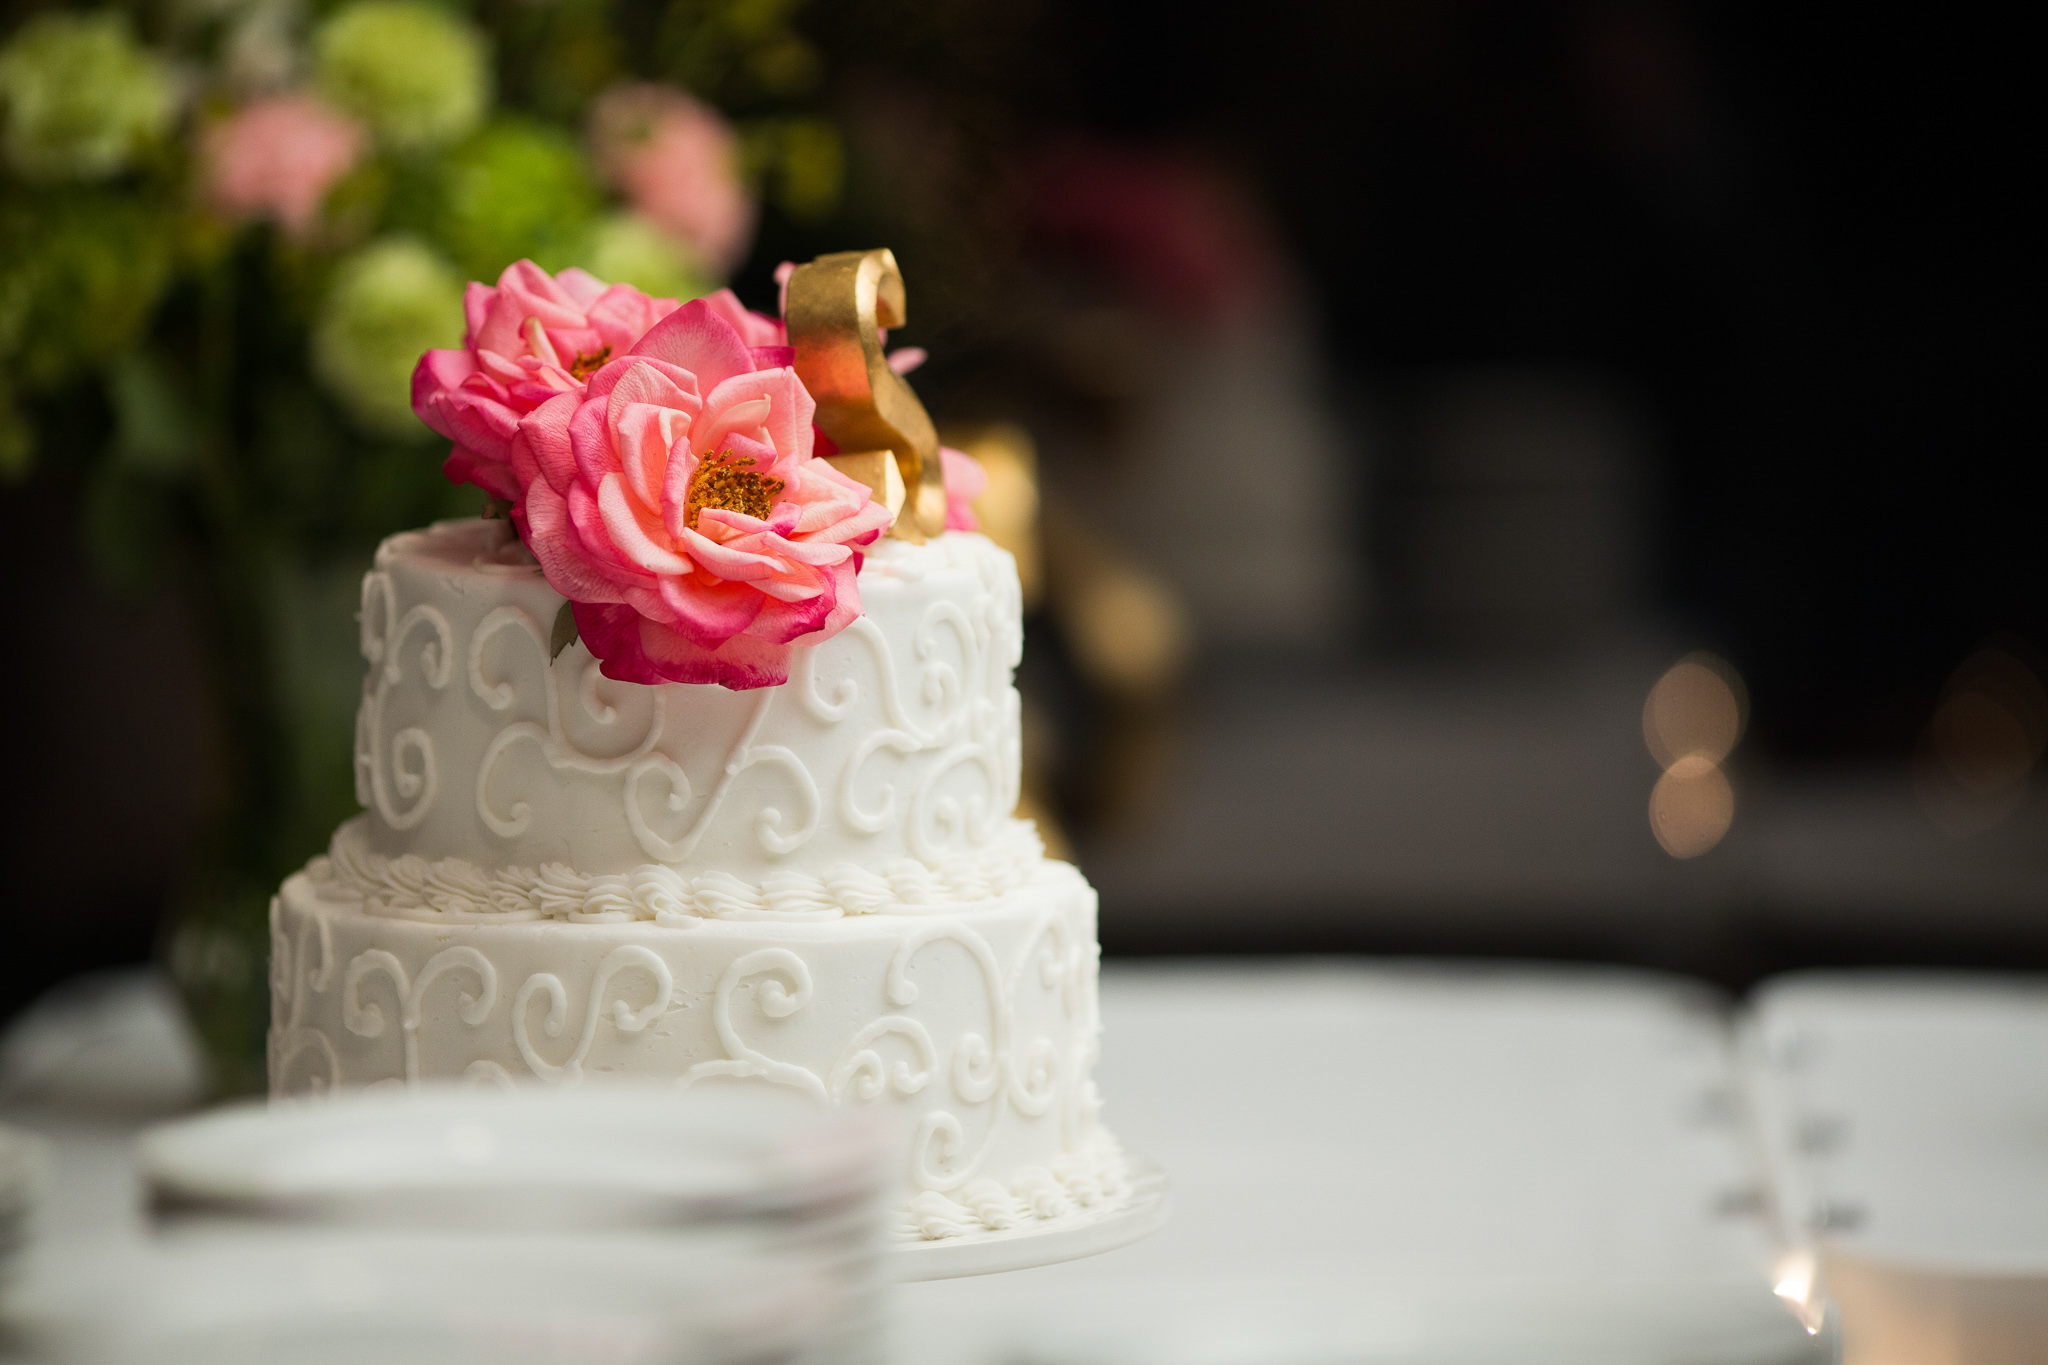 wedding photography class how to shoot details